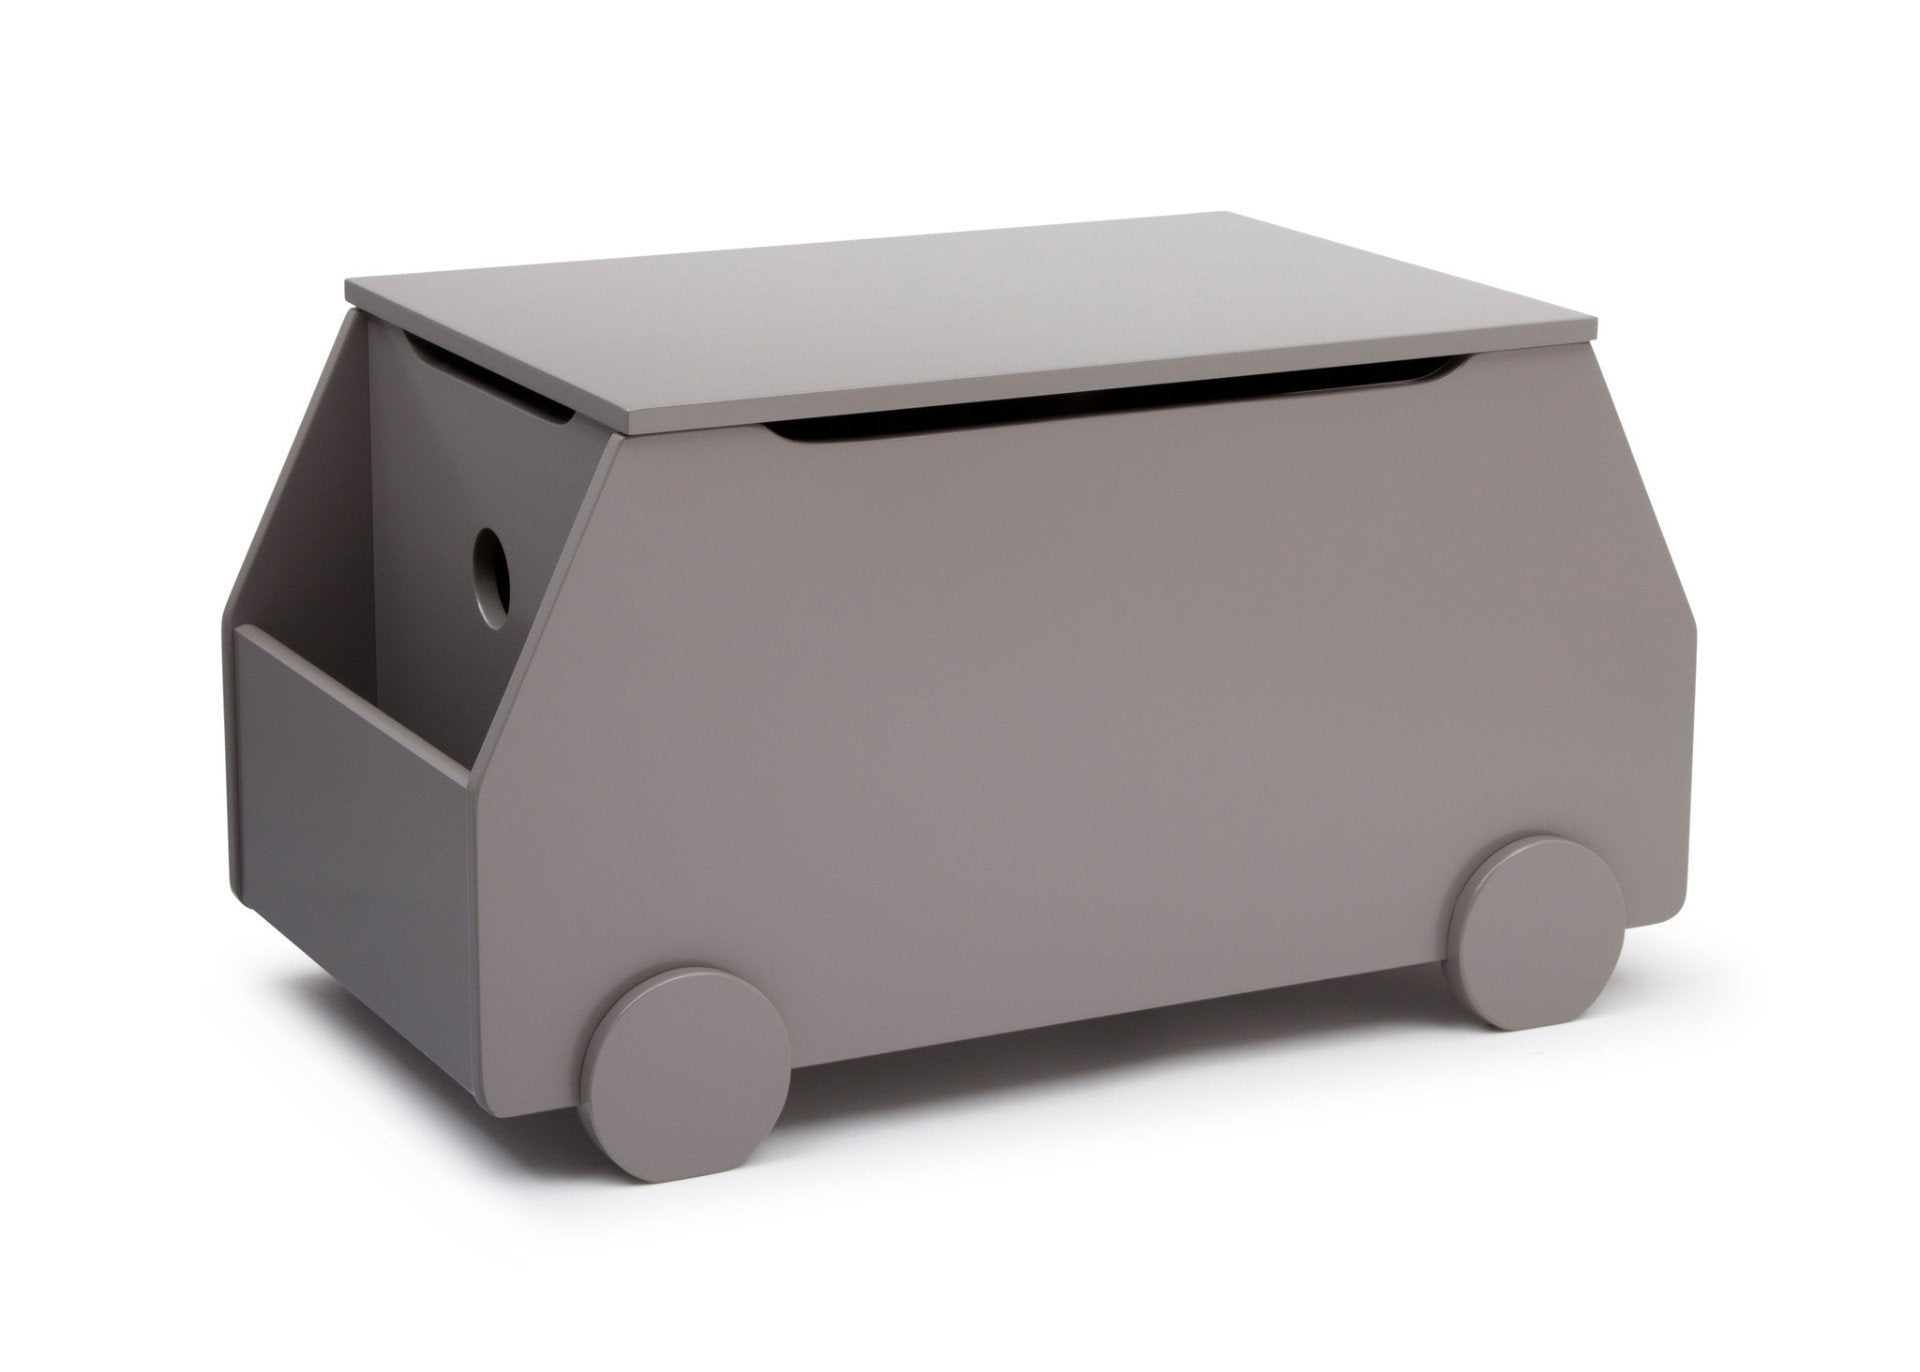 Delta Children Classic Grey (028) Metro Toy Box Right Side View a2a